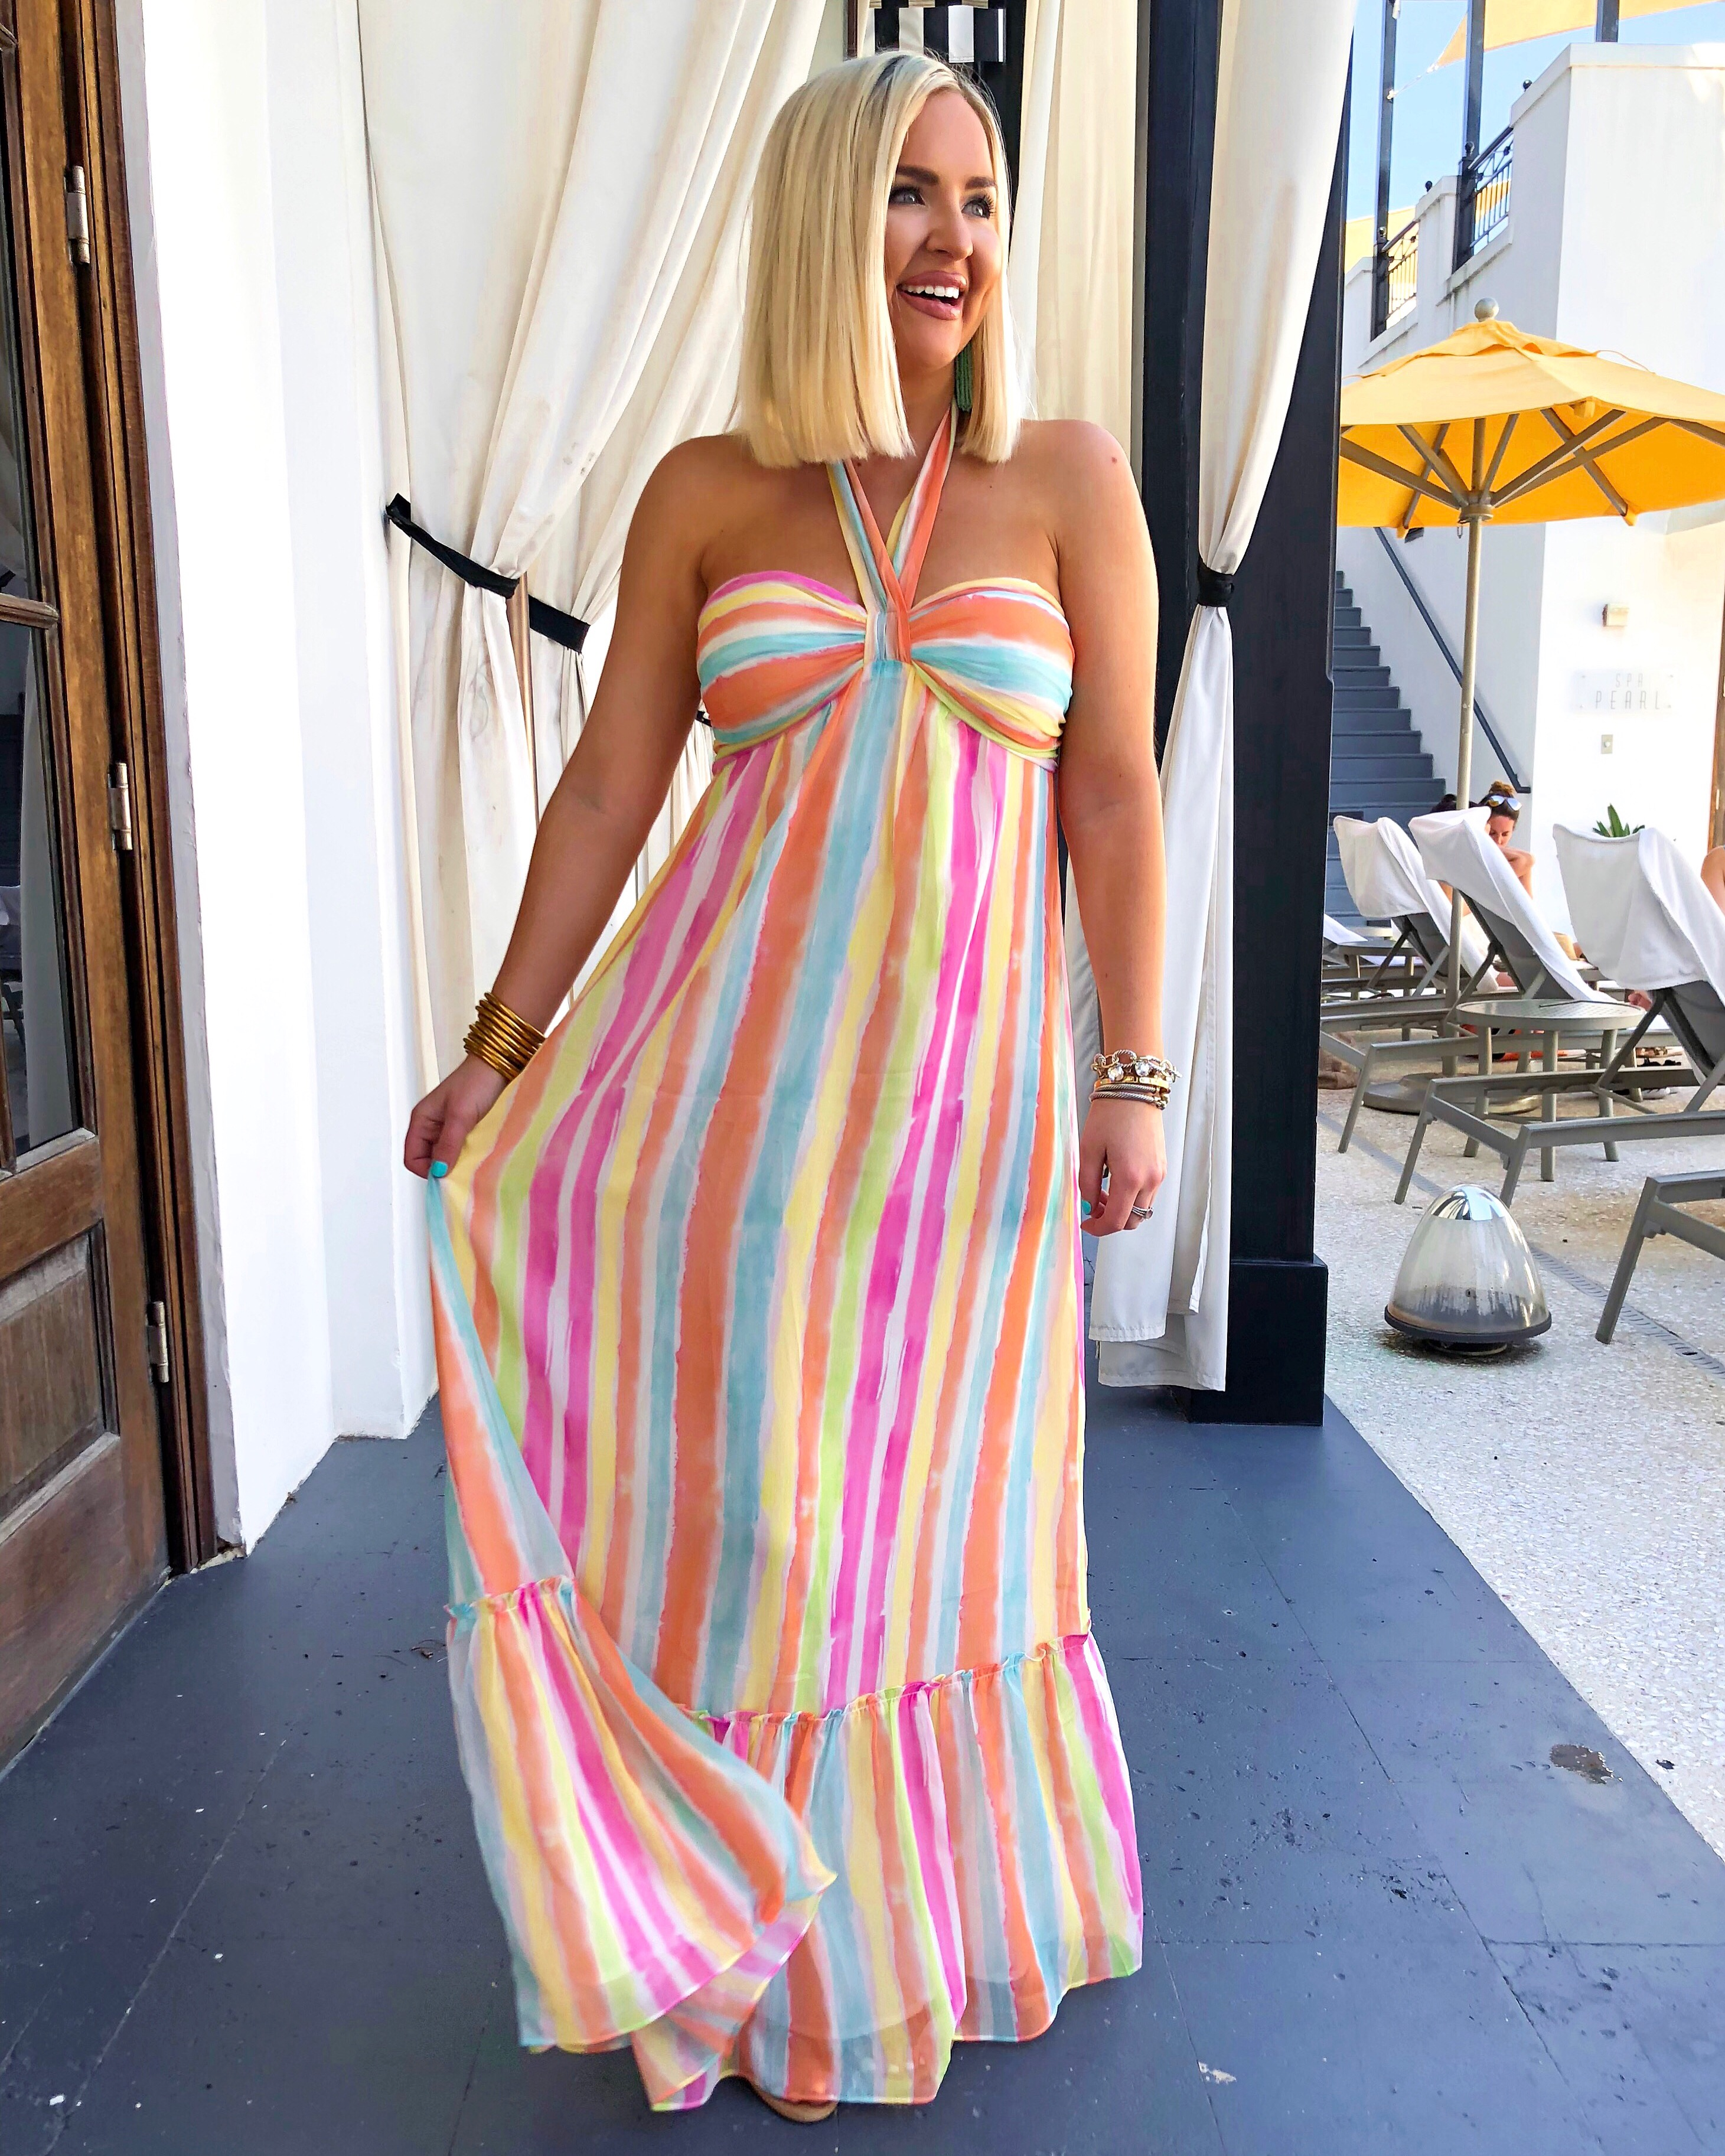 30A SUMMER OUTFITS